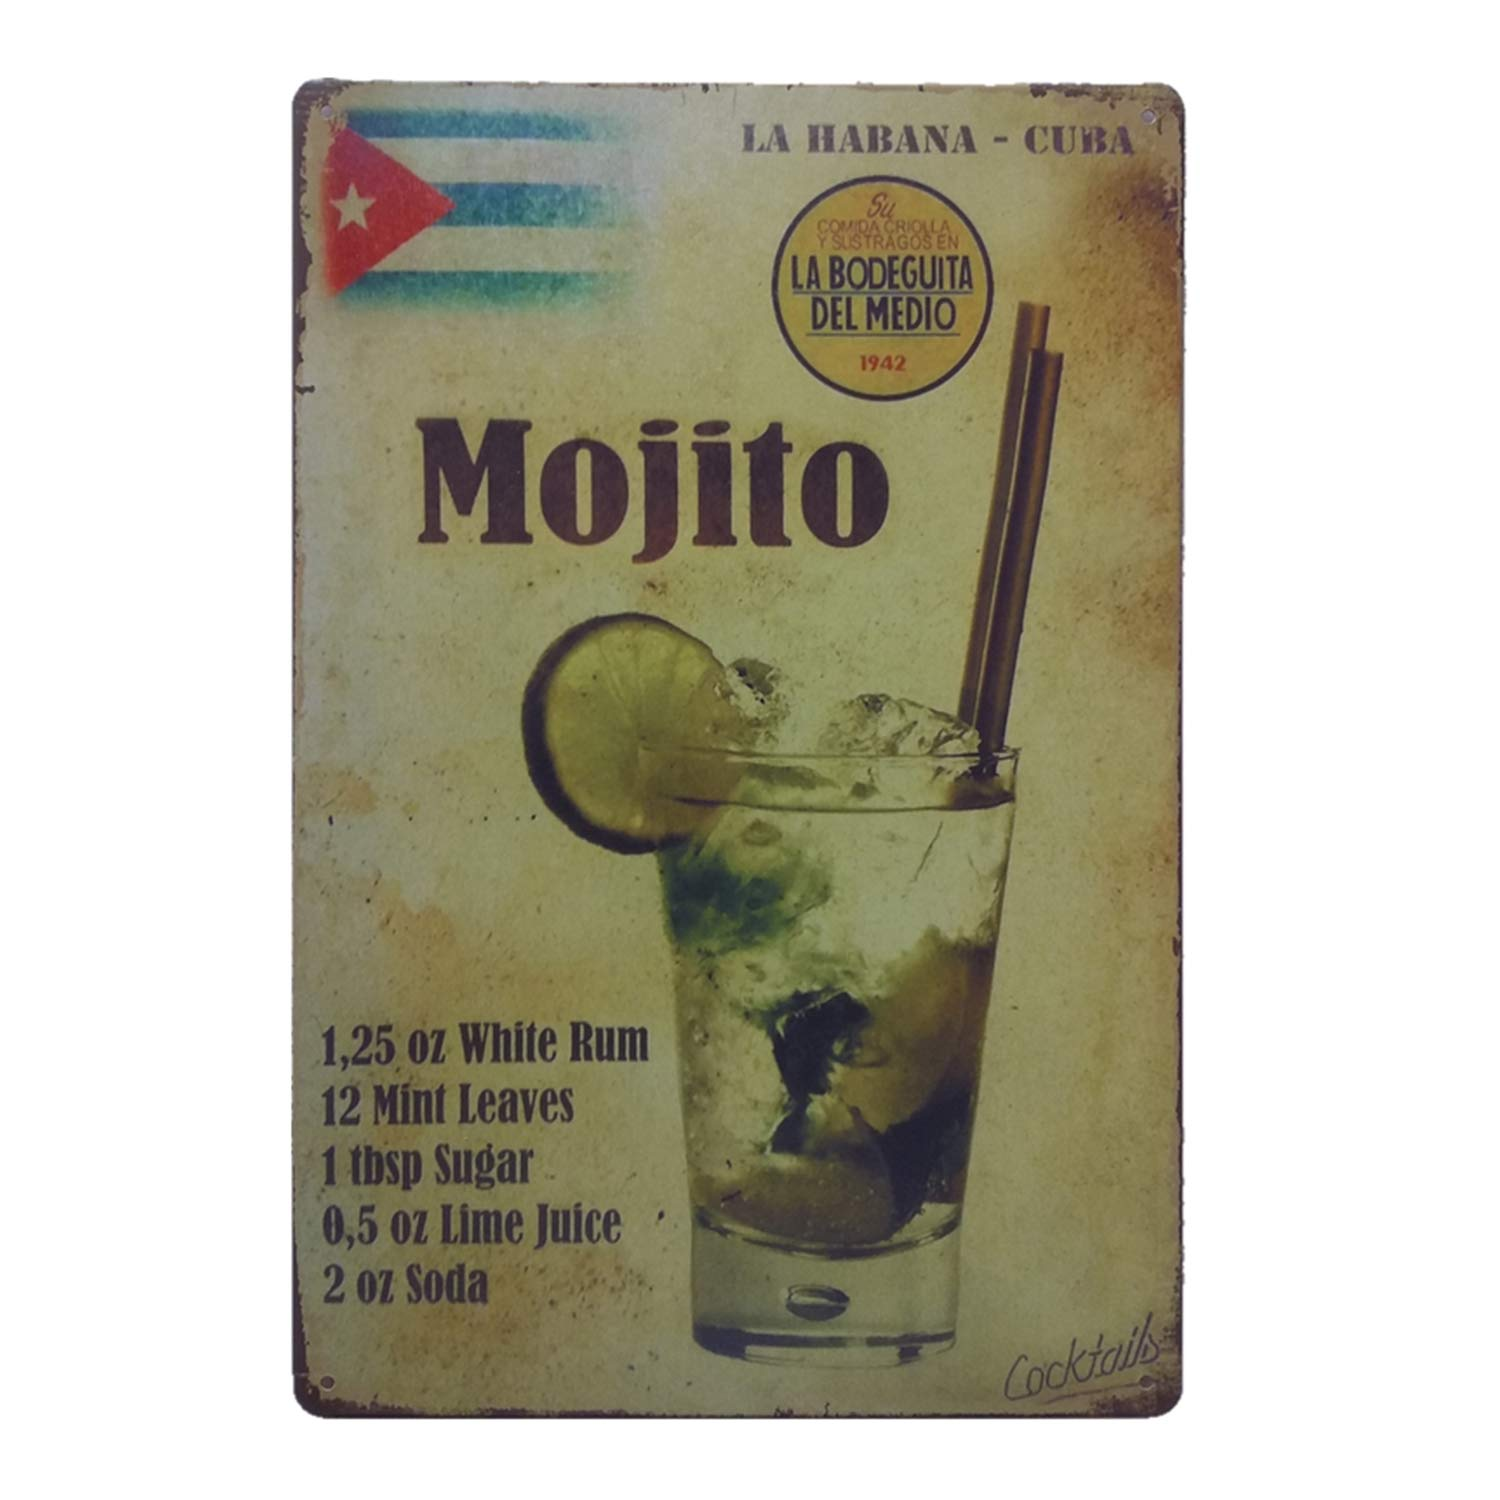 MMOUNT Mojito La Habana Cuba Drink Tin Sign Wall Kitchen Retro Metal Bar Food Style Ornament Coffee Decor Home Gift Size 8 X 12